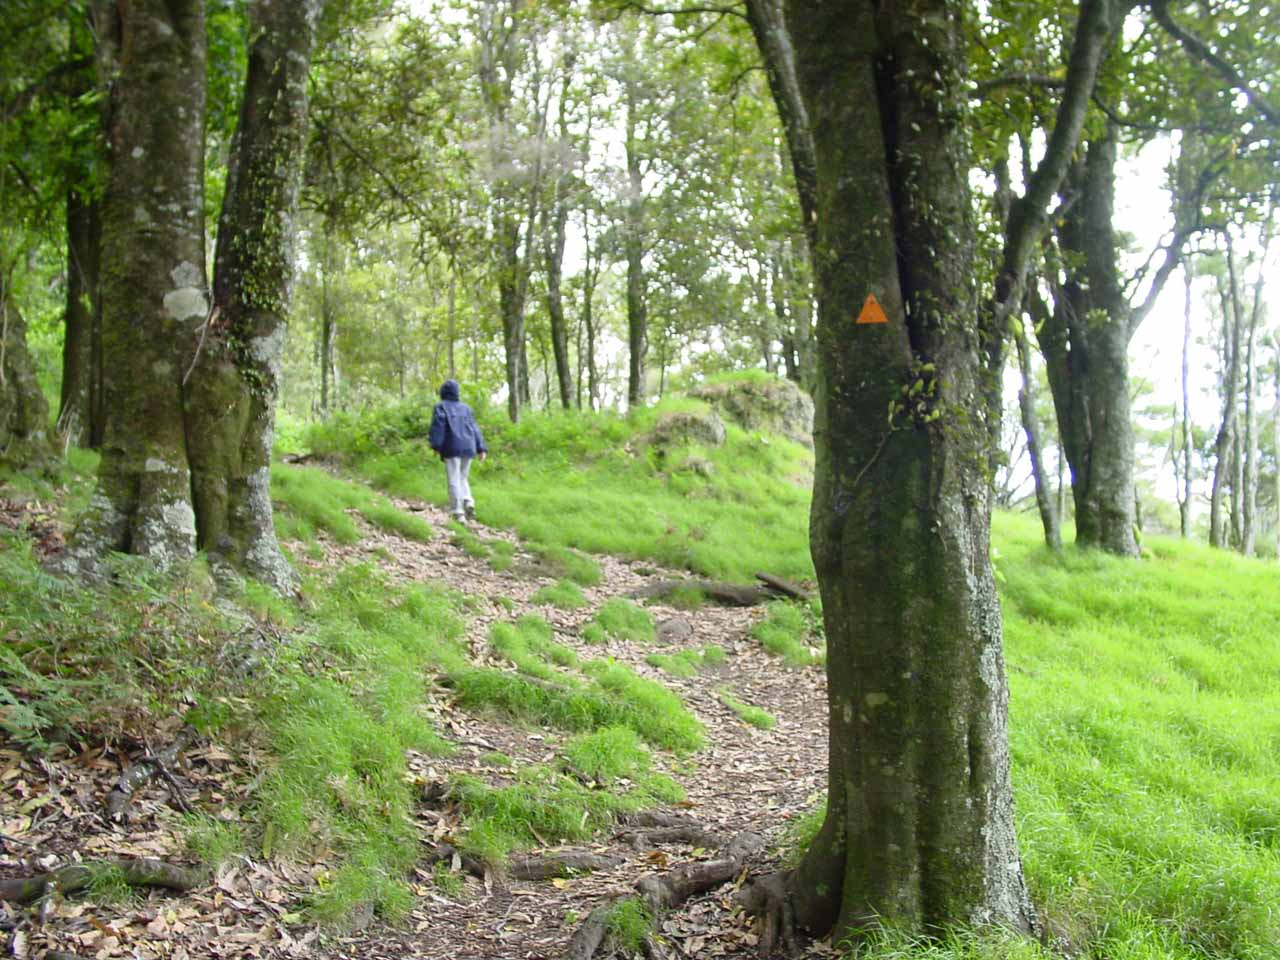 Beyond the paddock, Julie and I continued following the arrows into a lightly forested area towards the Boundary Stream Scenic Reserve